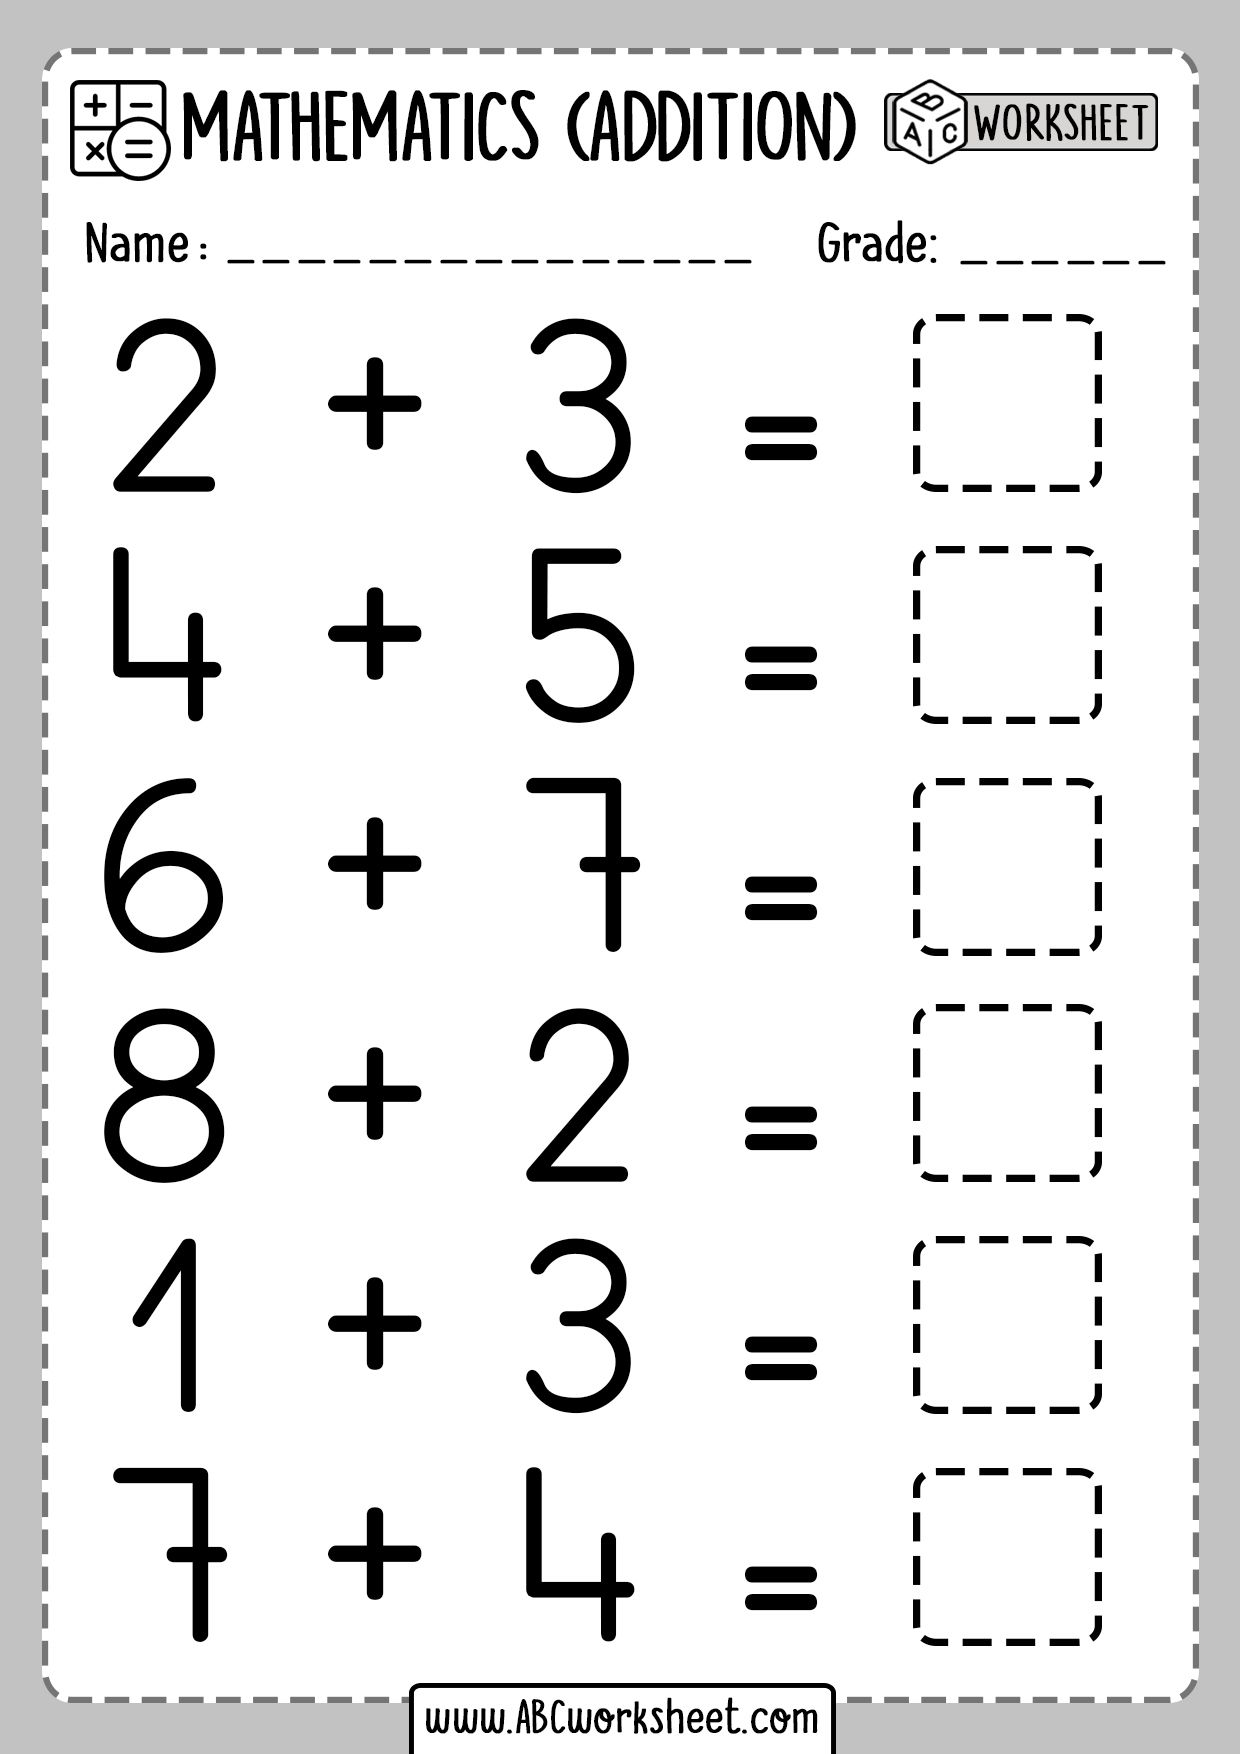 Addition Worksheets For Grade 1 In